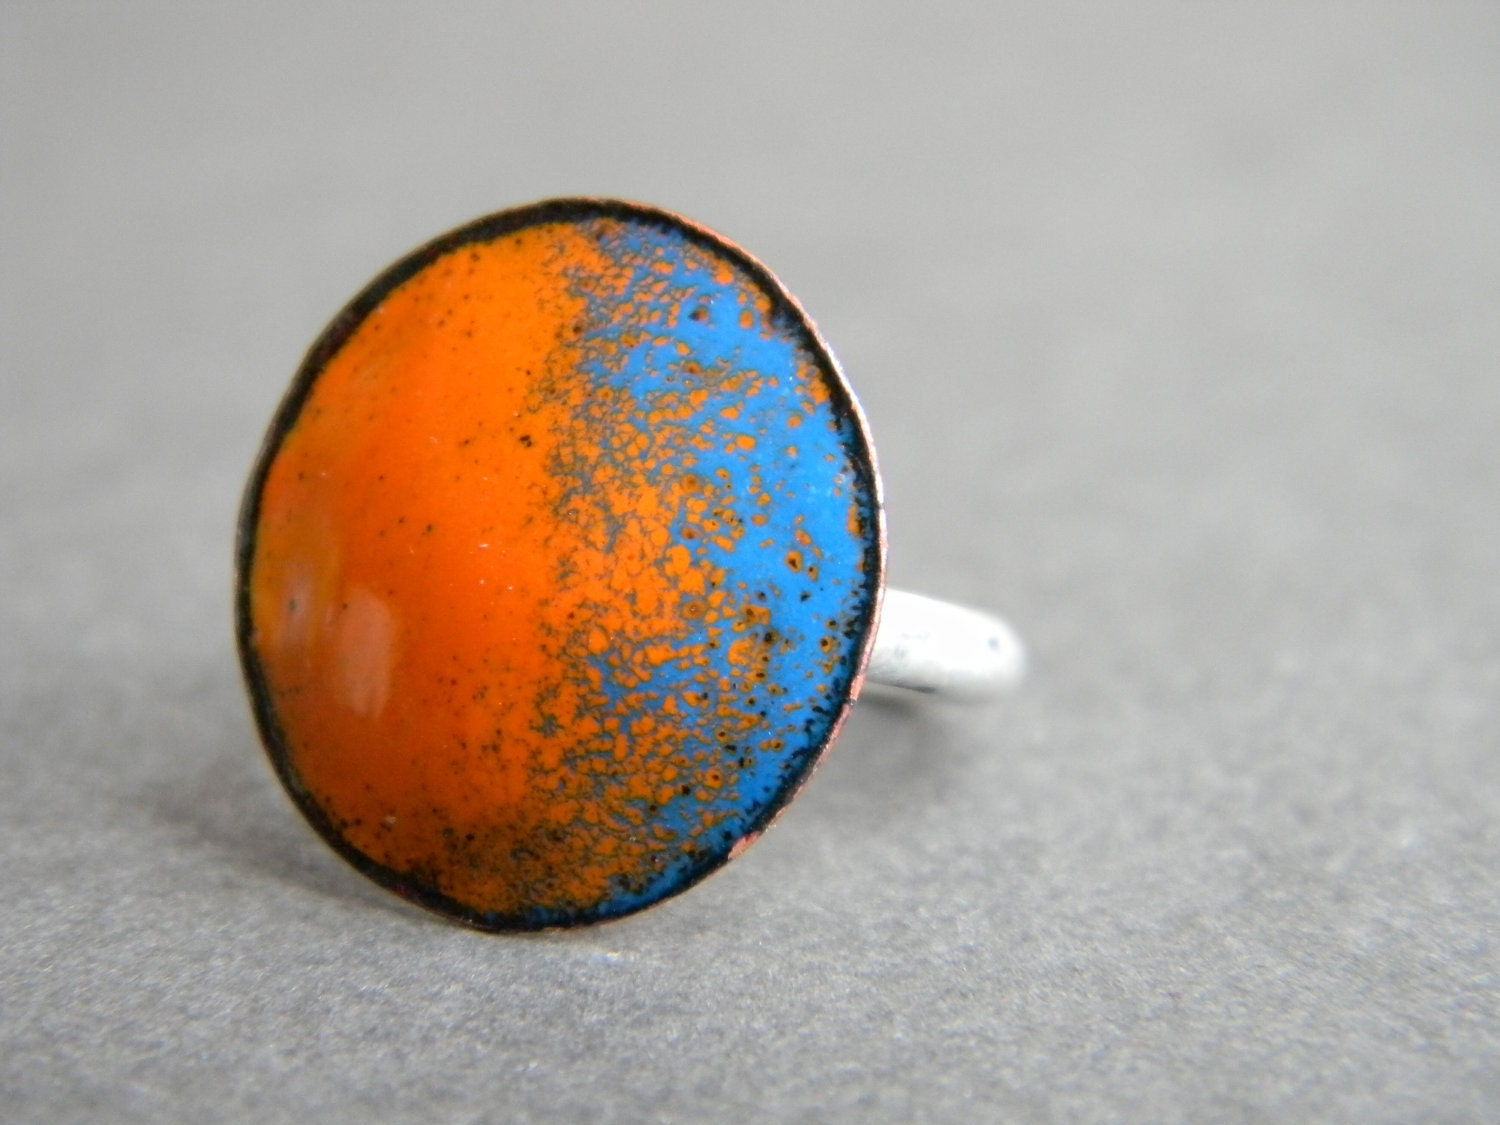 Bright Lights enamel cocktail ring orange and blue - katerieppeljewelry